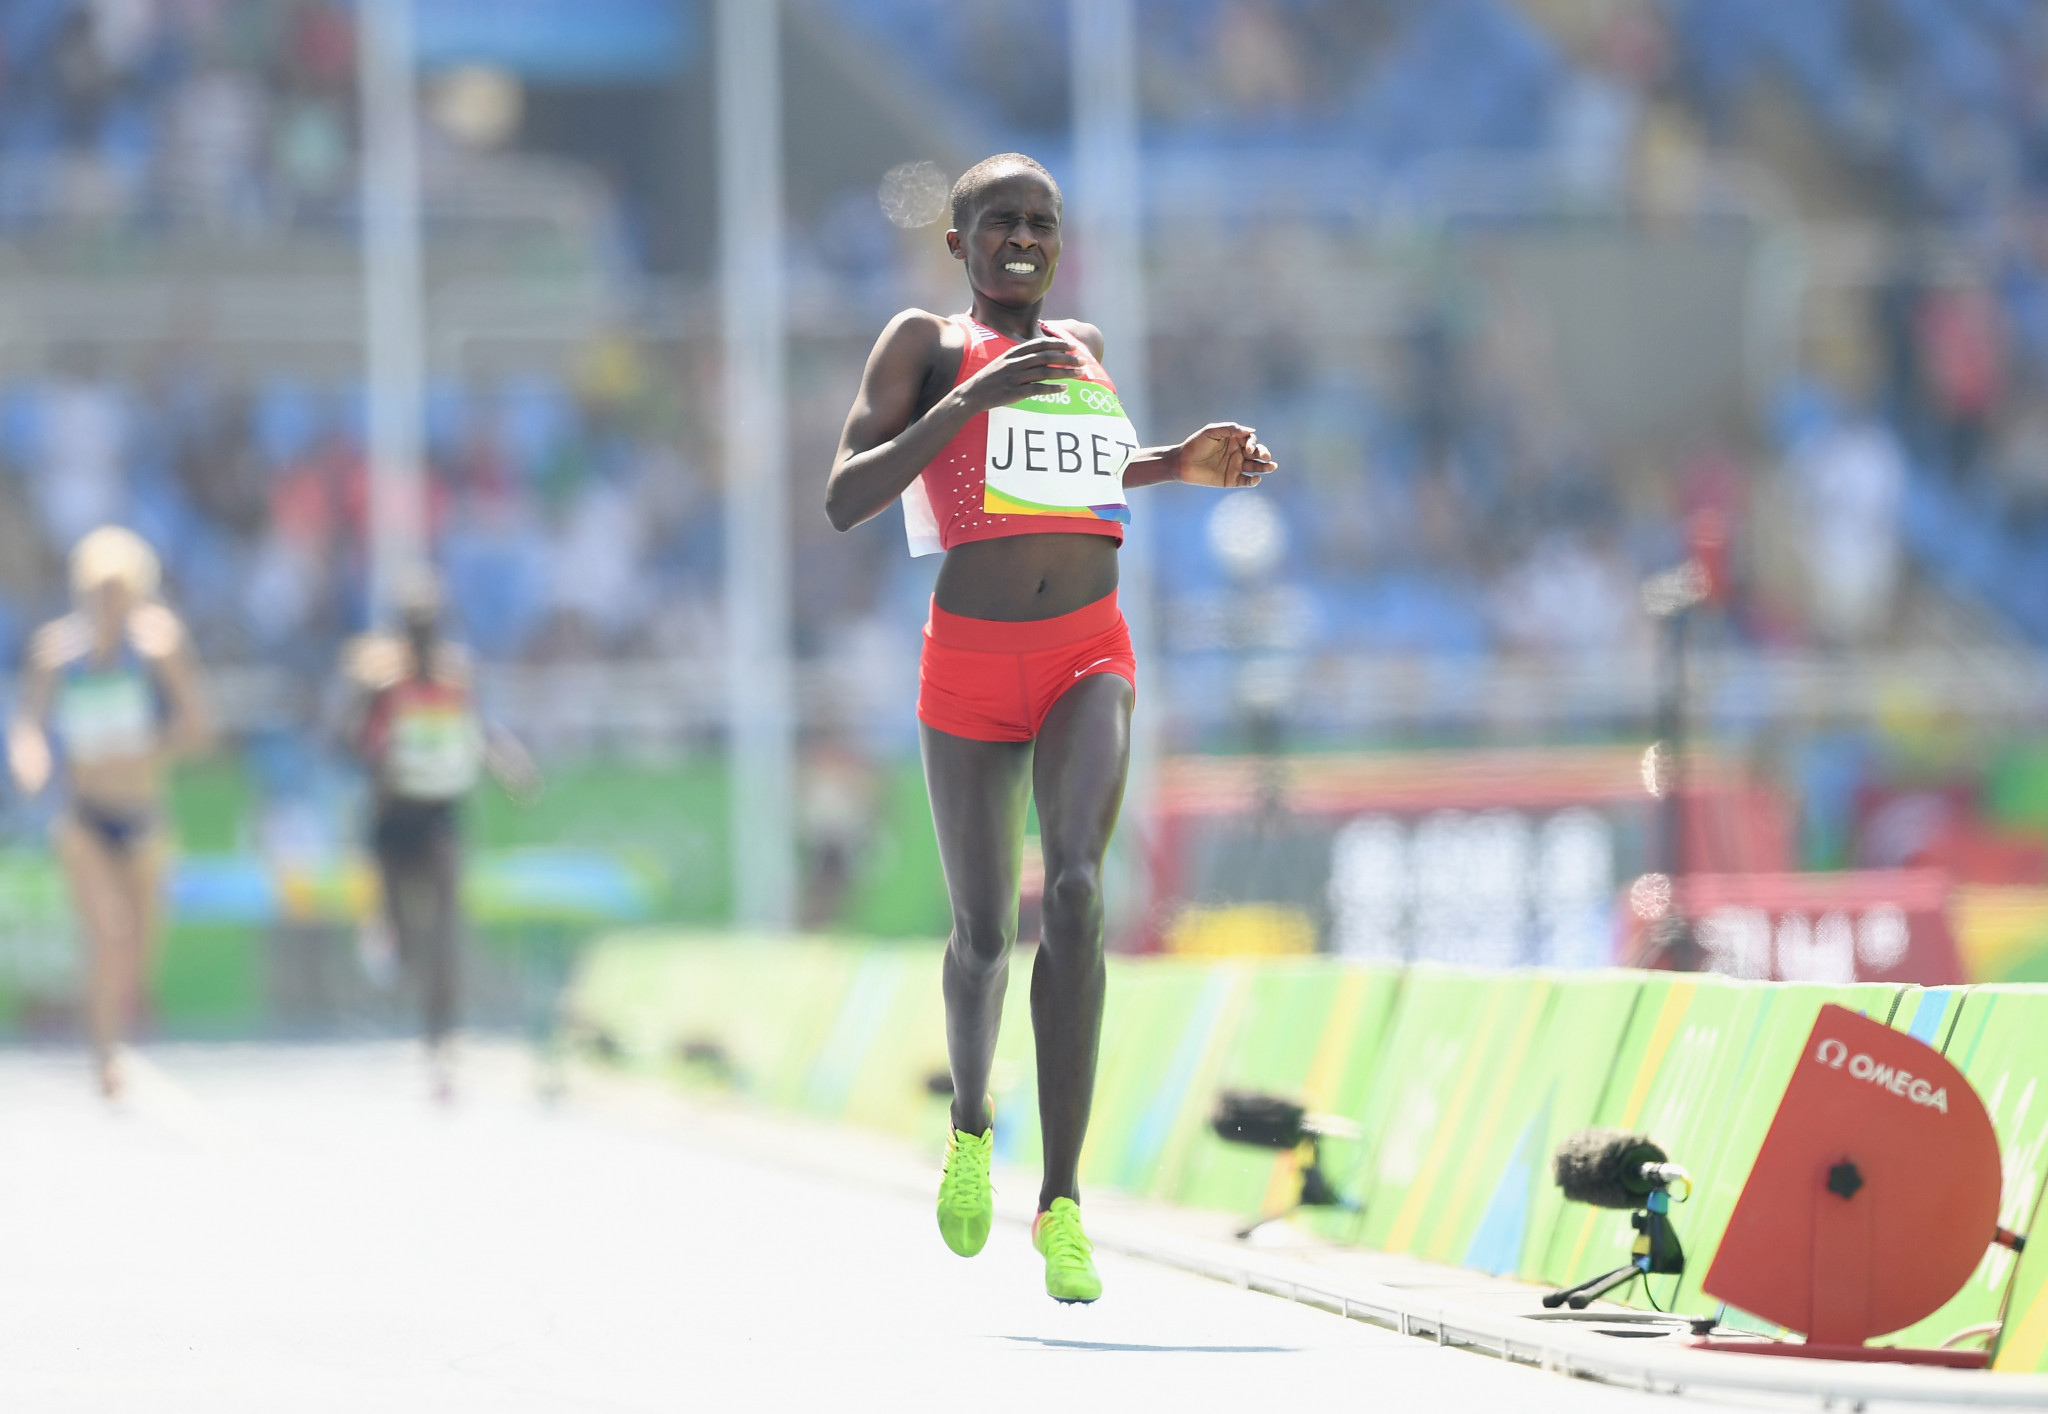 Olympic steeplechase champion Jebet handed four-year doping ban